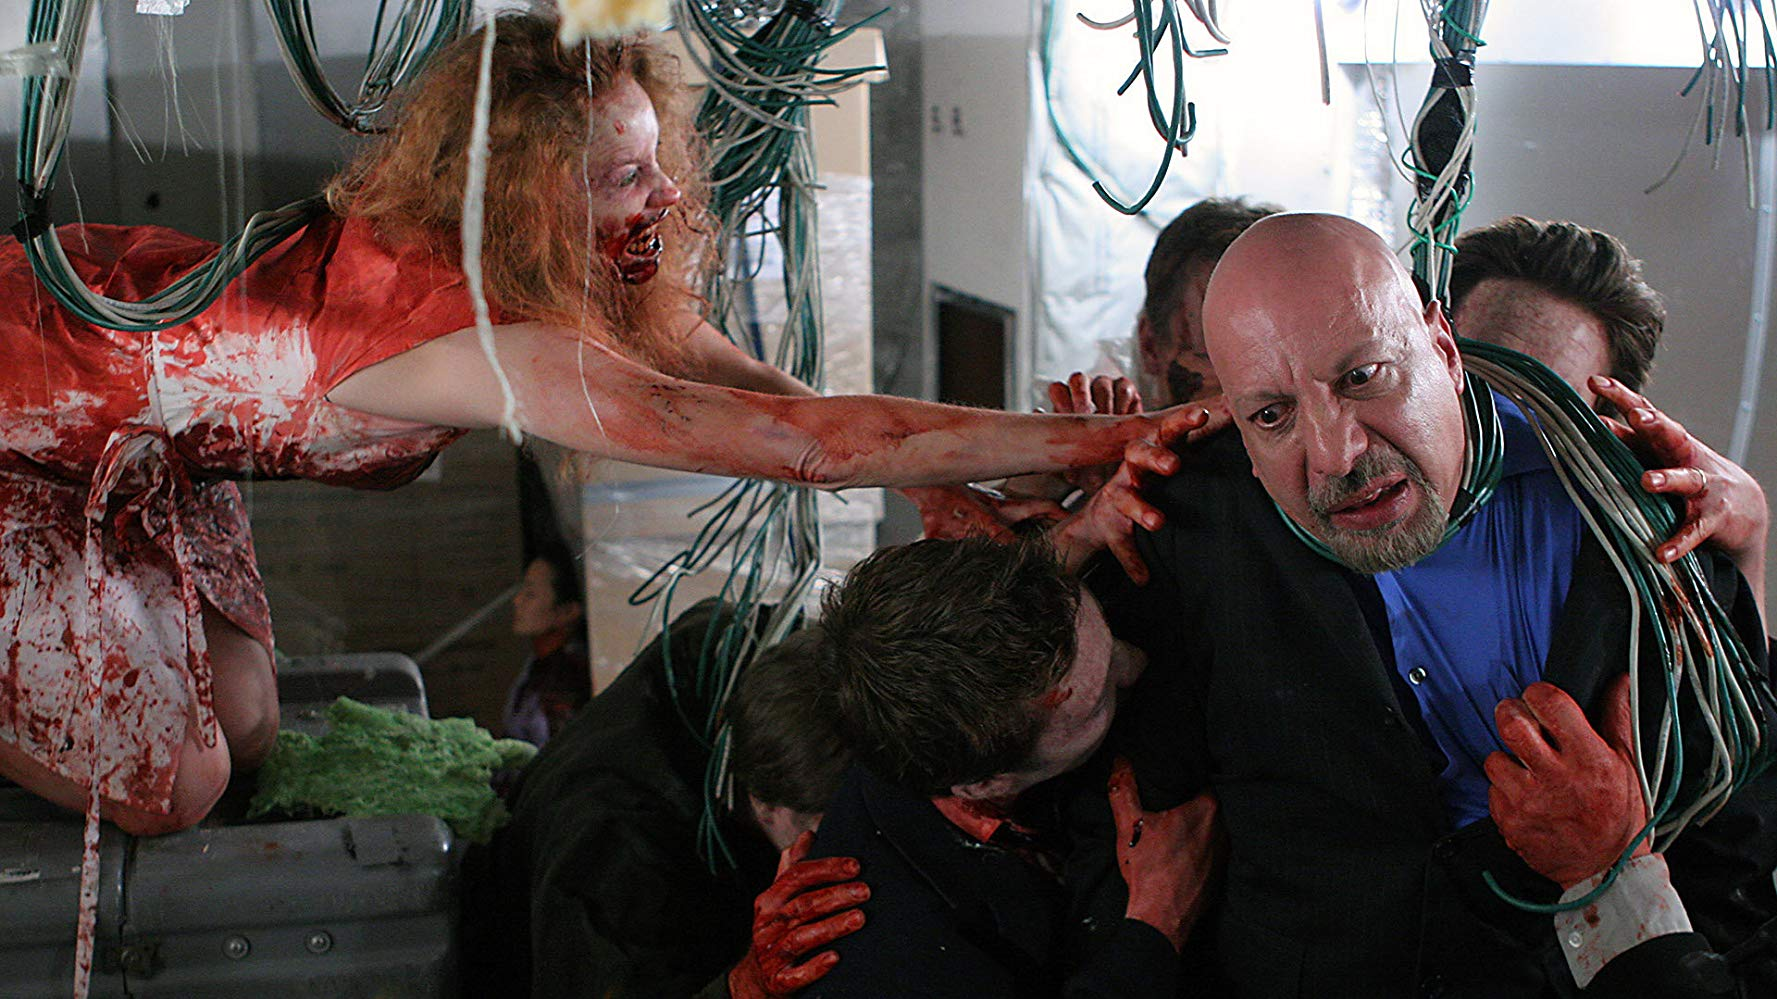 Erick Avari is attacked by zombies on a plane in Flight of the Living Dead: Outbreak on a Plane (2007)